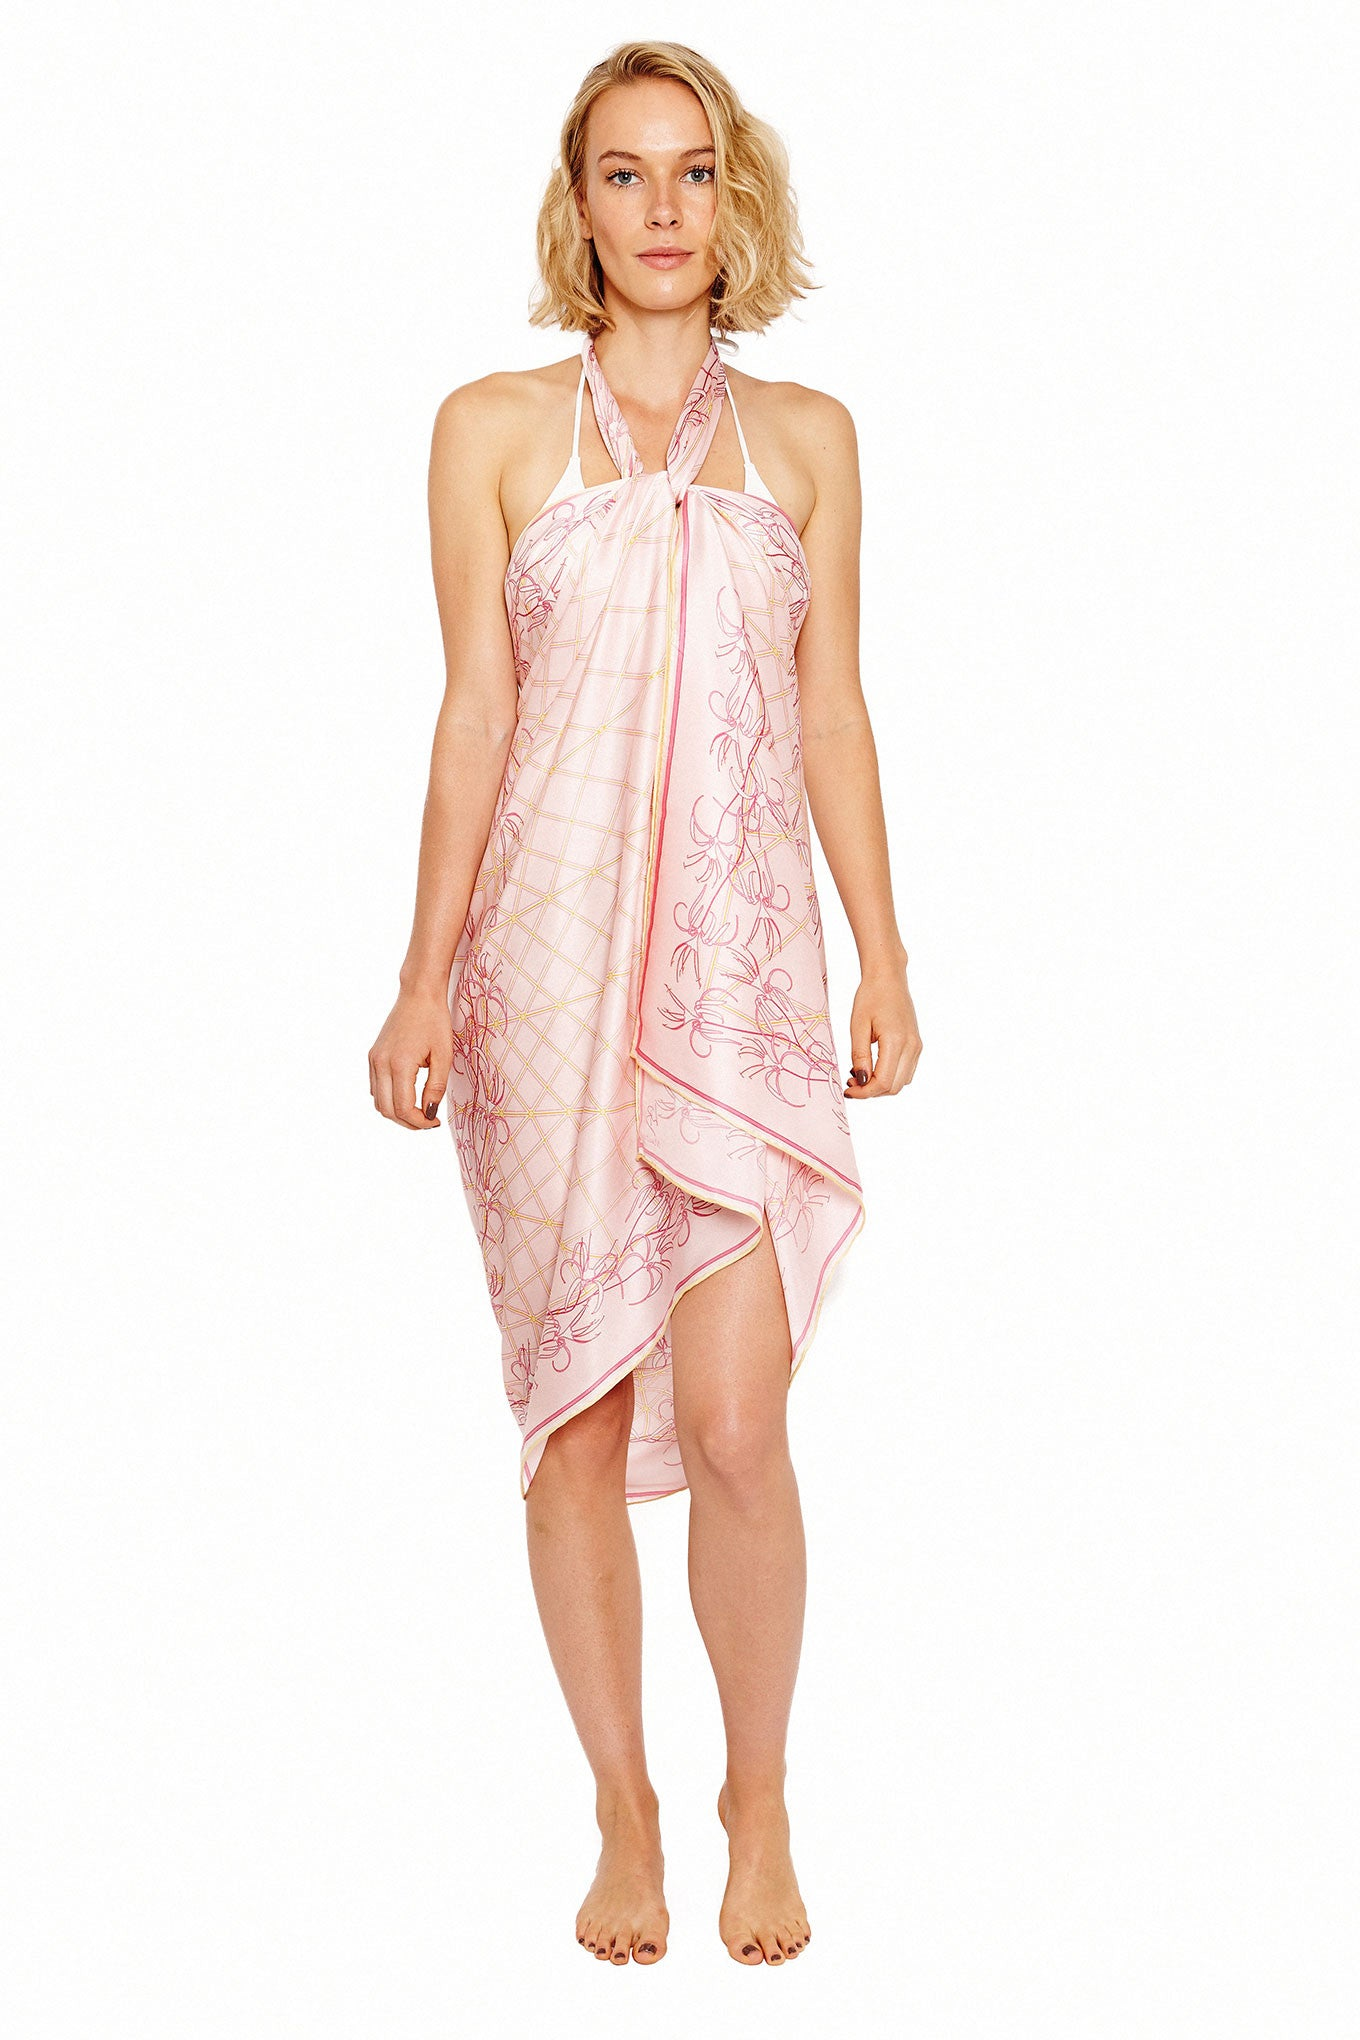 Lotty B Sarong in Silk Charmeuse (Spiderlily Peach Pink) Tied at Neck